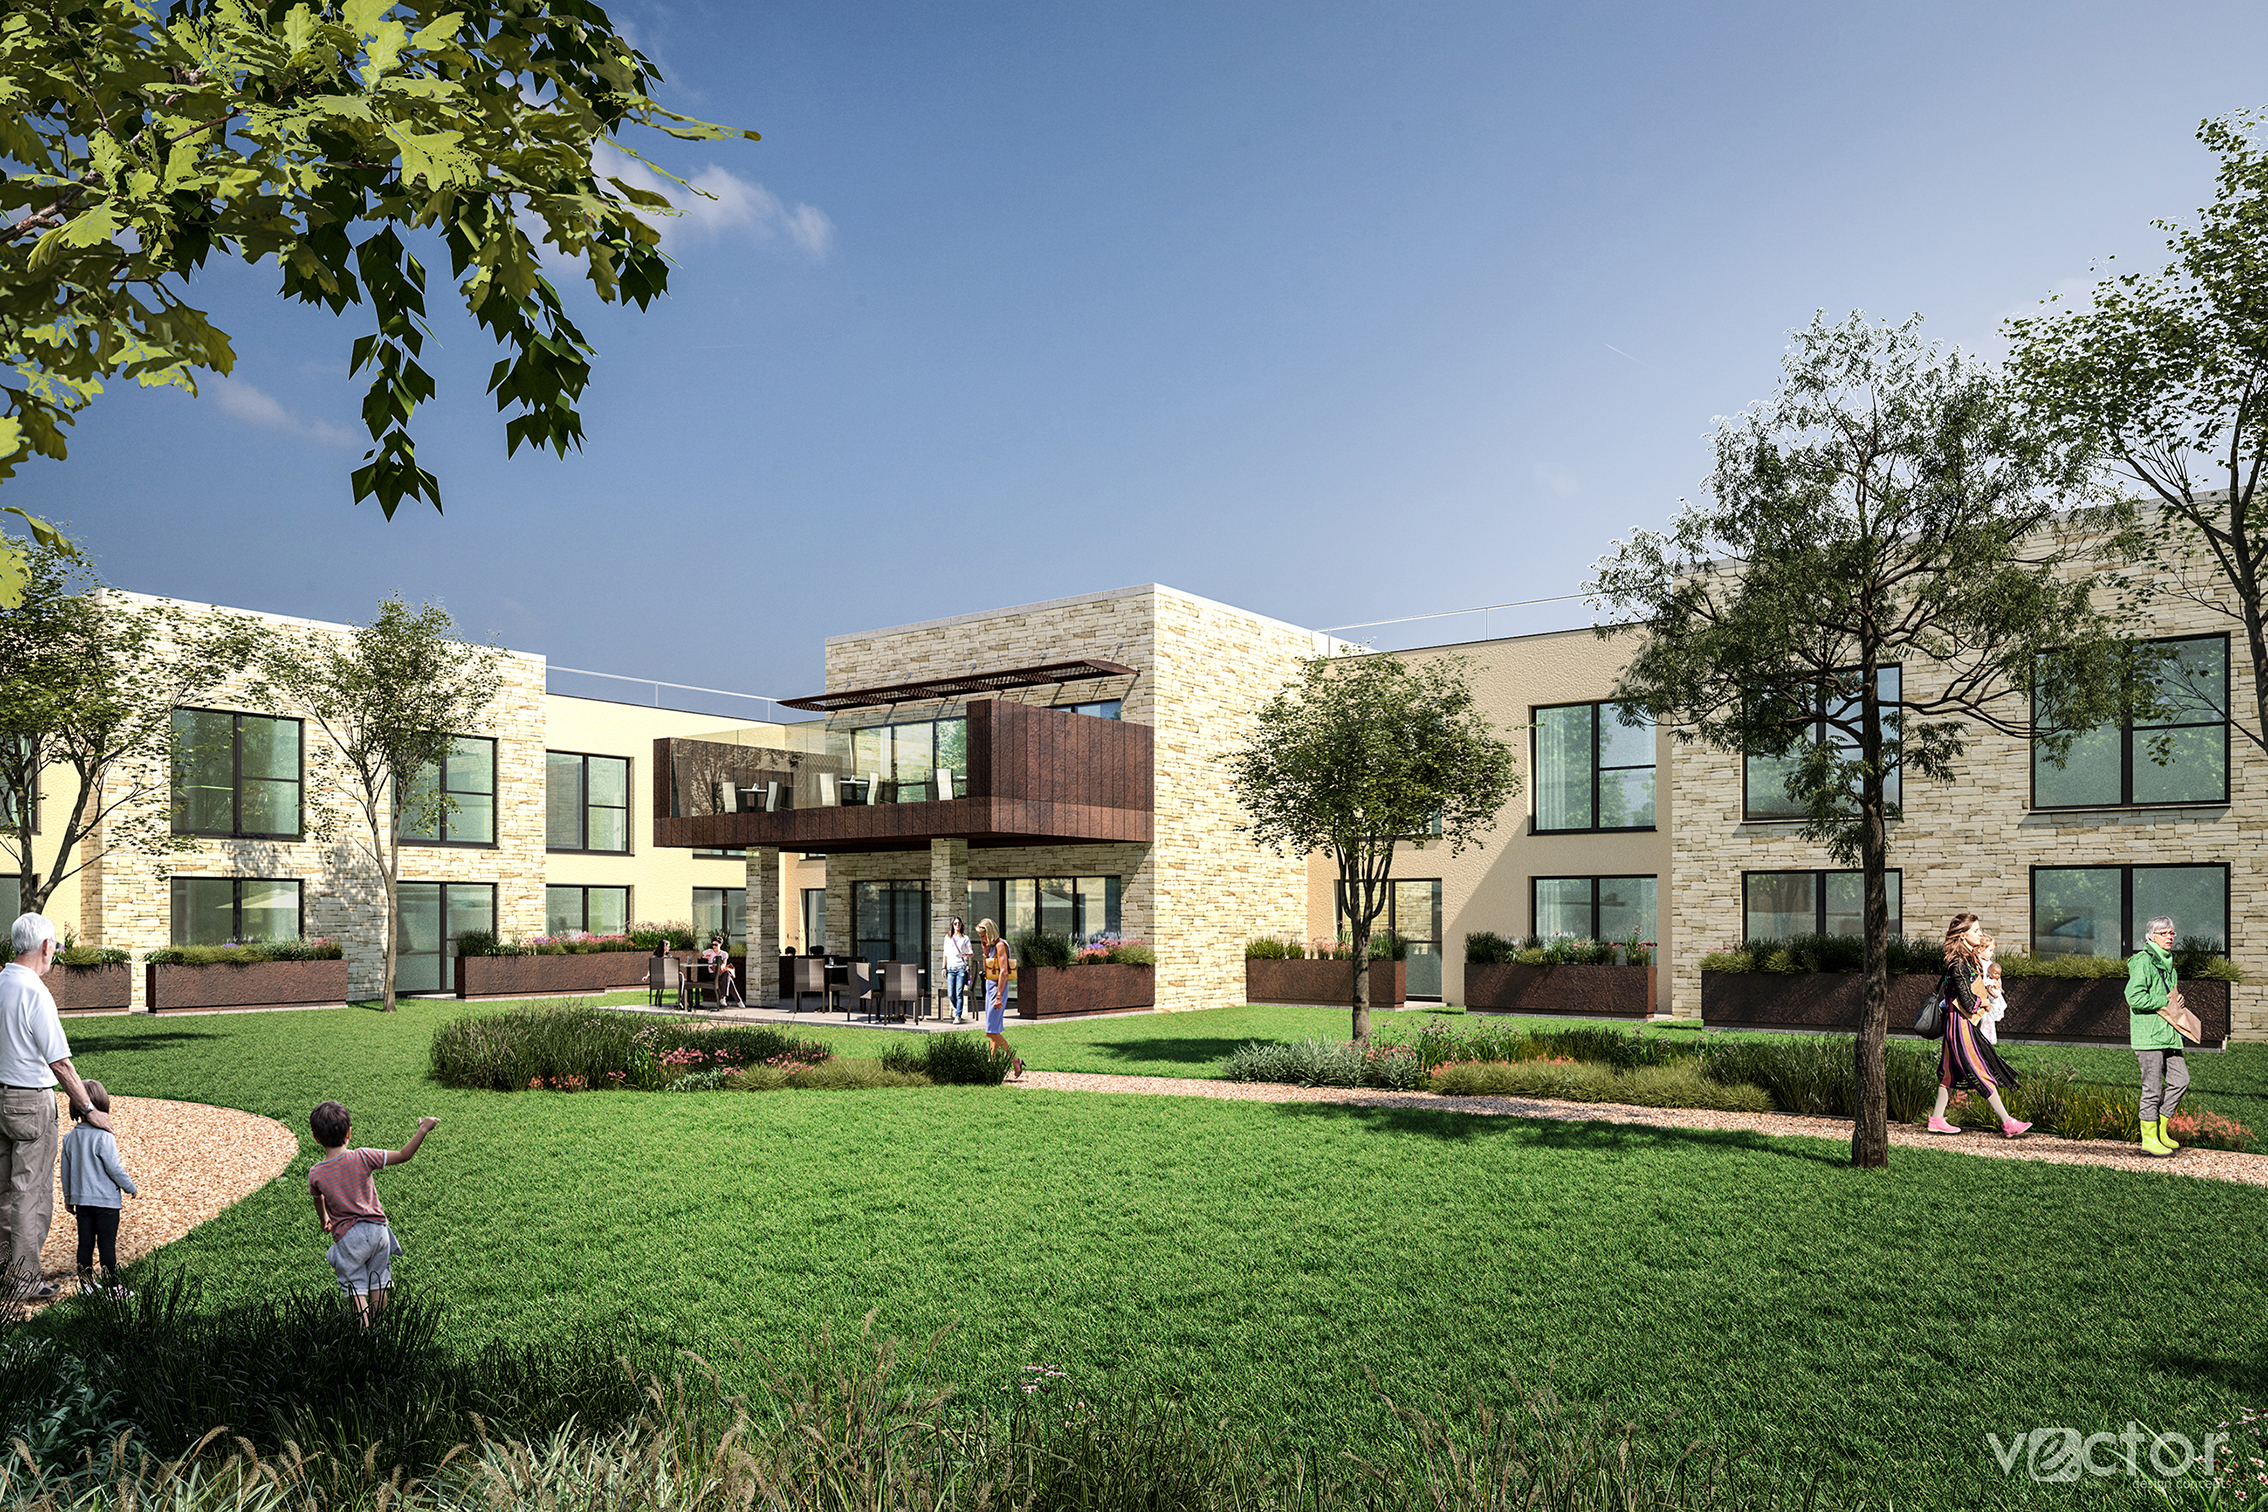 PLANS: An artist's impression of how the care home might look